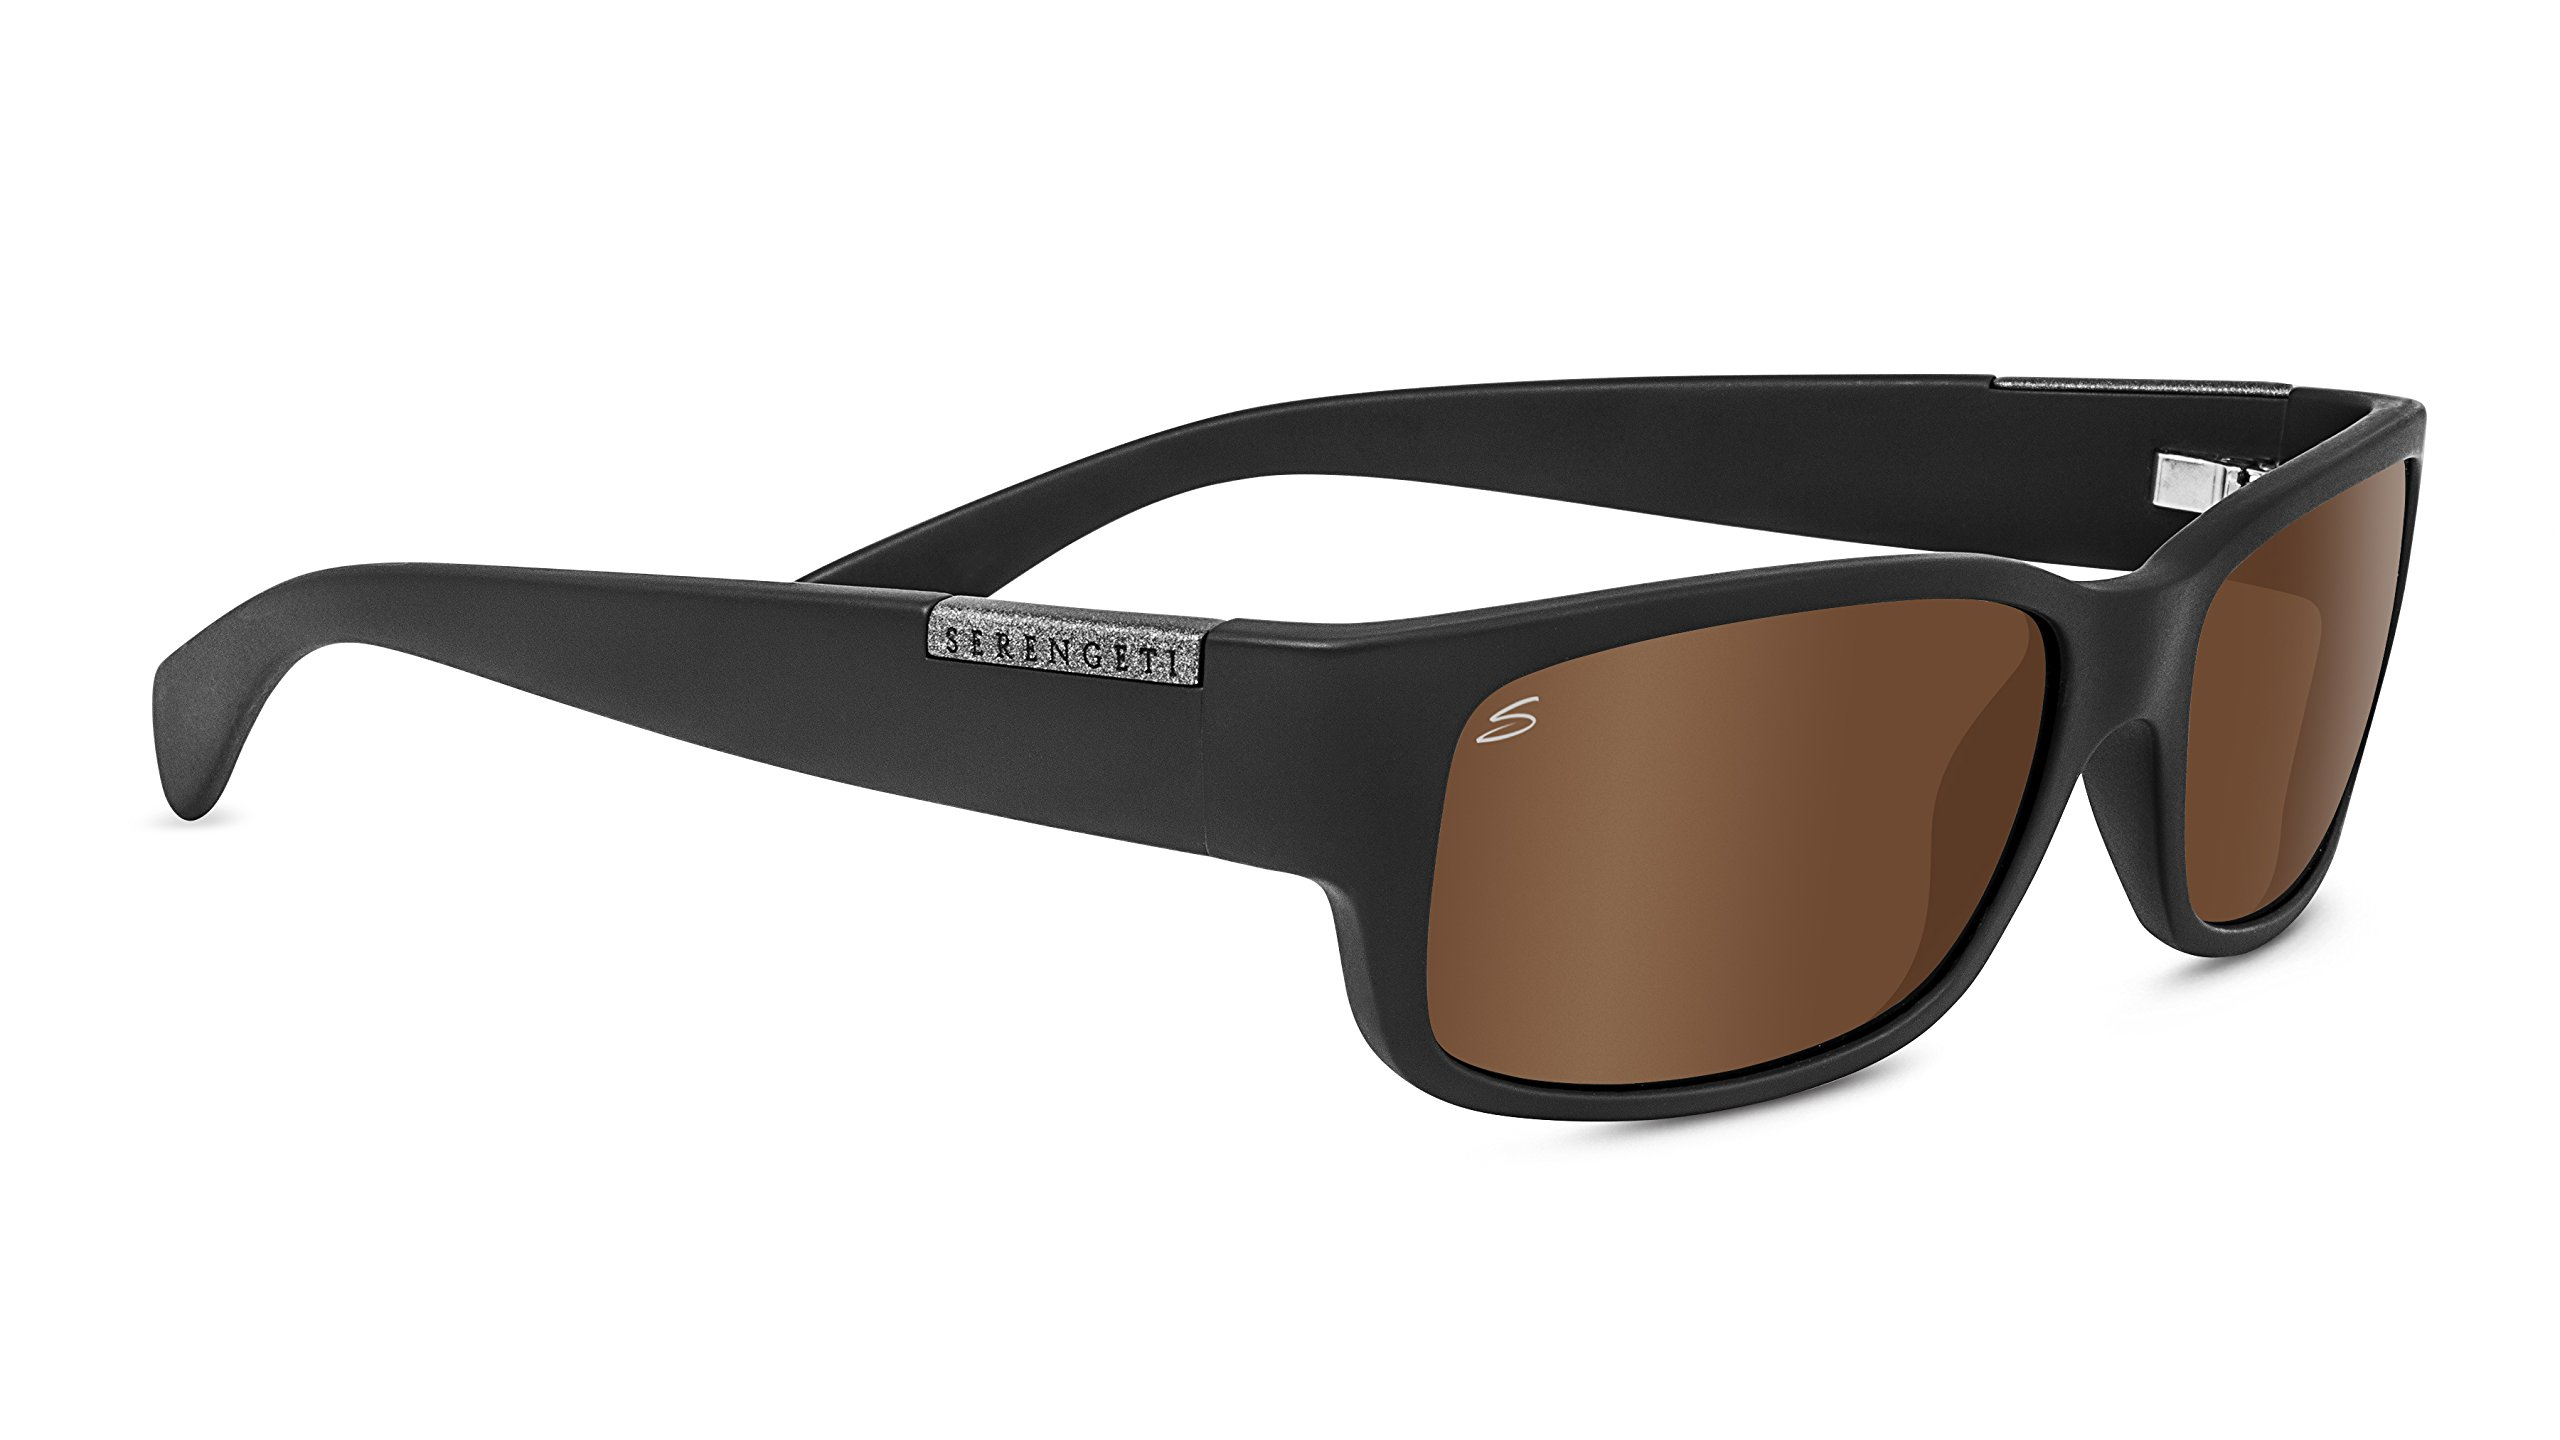 Serengeti 8437-Merano Merano, Satin Black, Polarized Drivers Gold